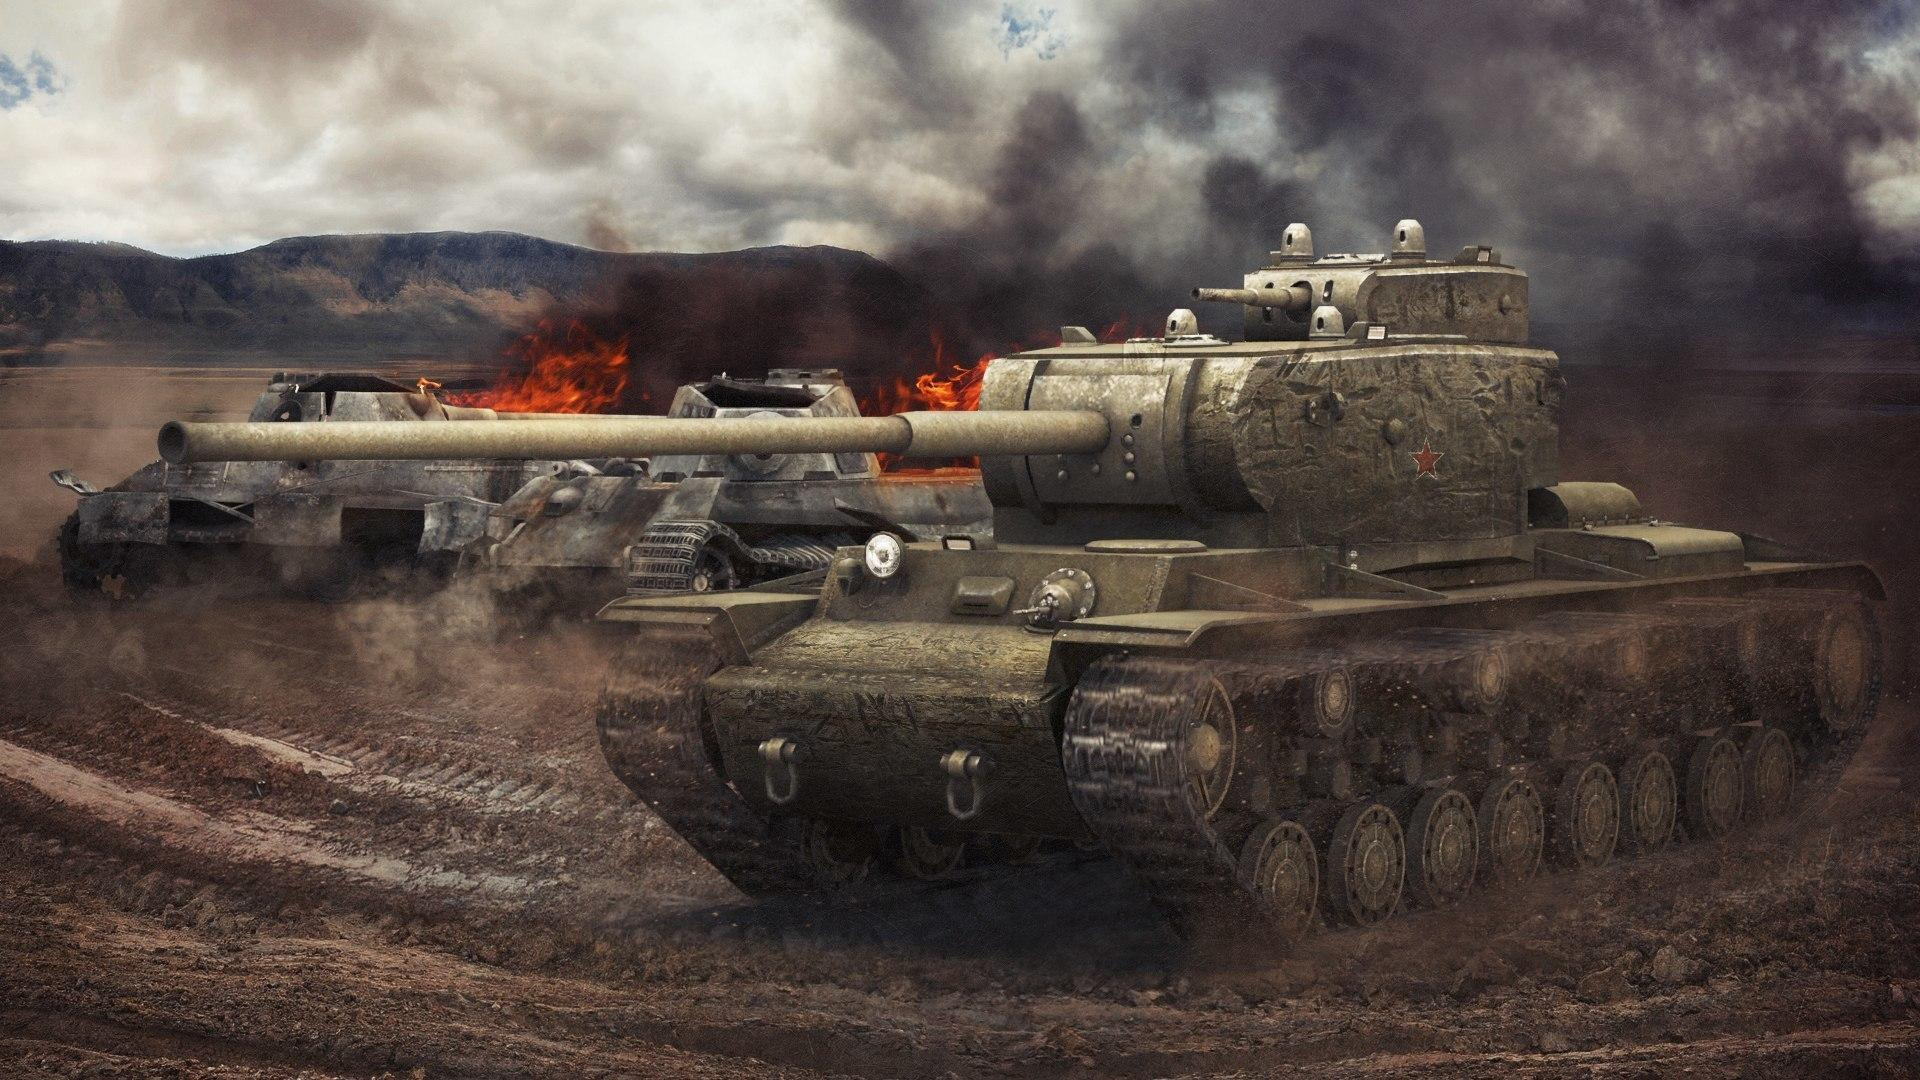 World Of Tanks Live Wallpaper Android Apps On Google Play 1920x1080